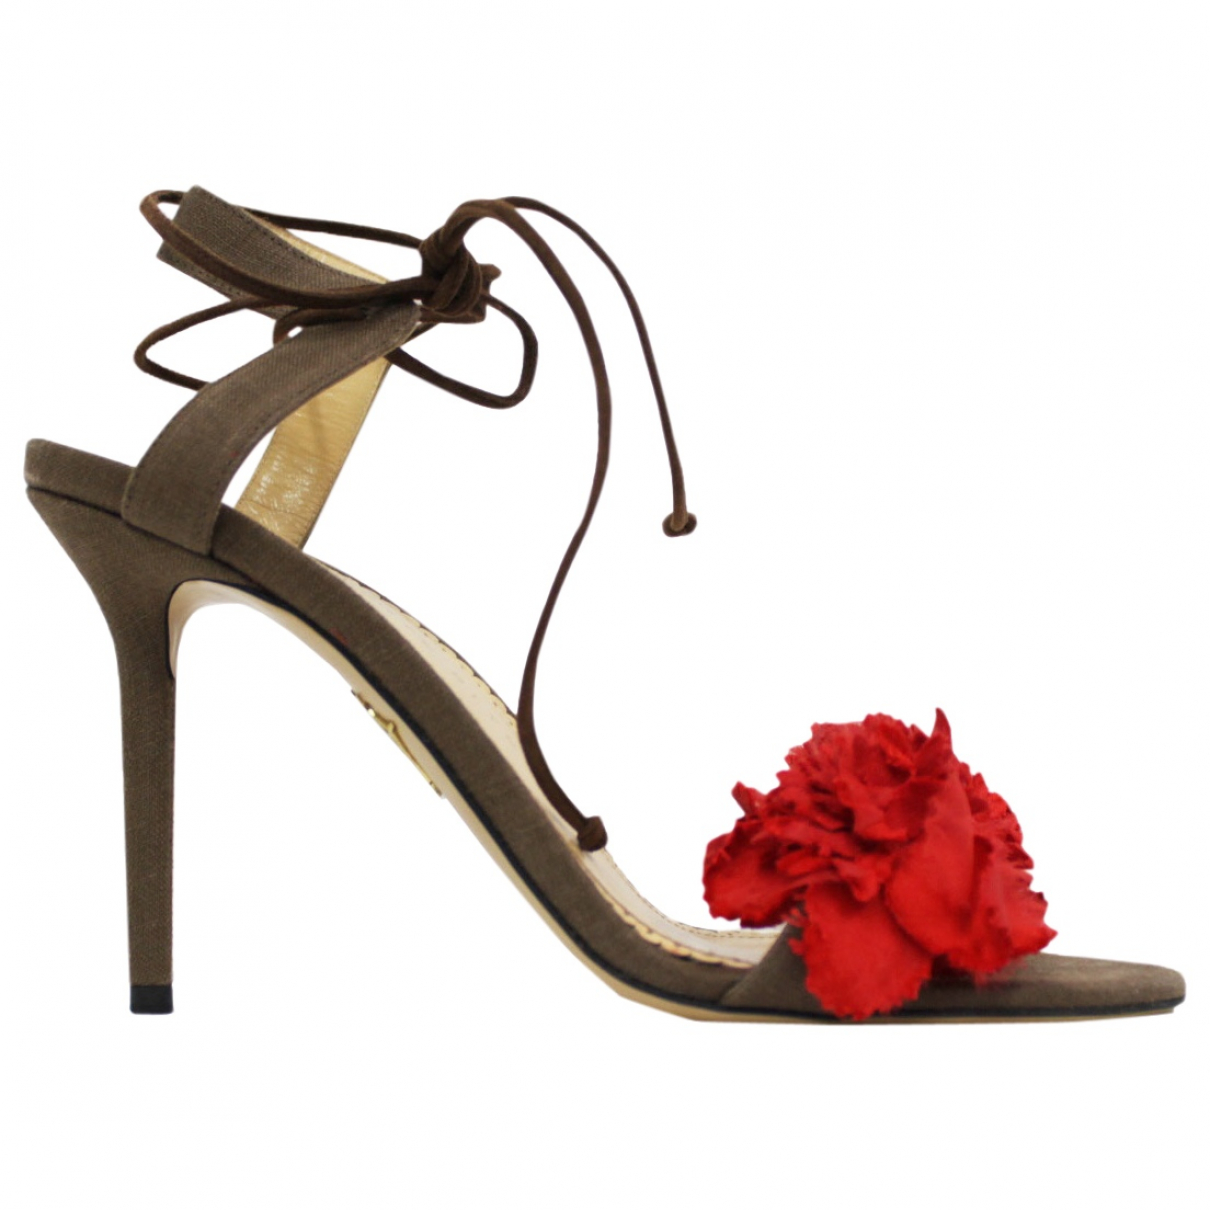 Charlotte Olympia \N Brown Suede Sandals for Women 39 EU